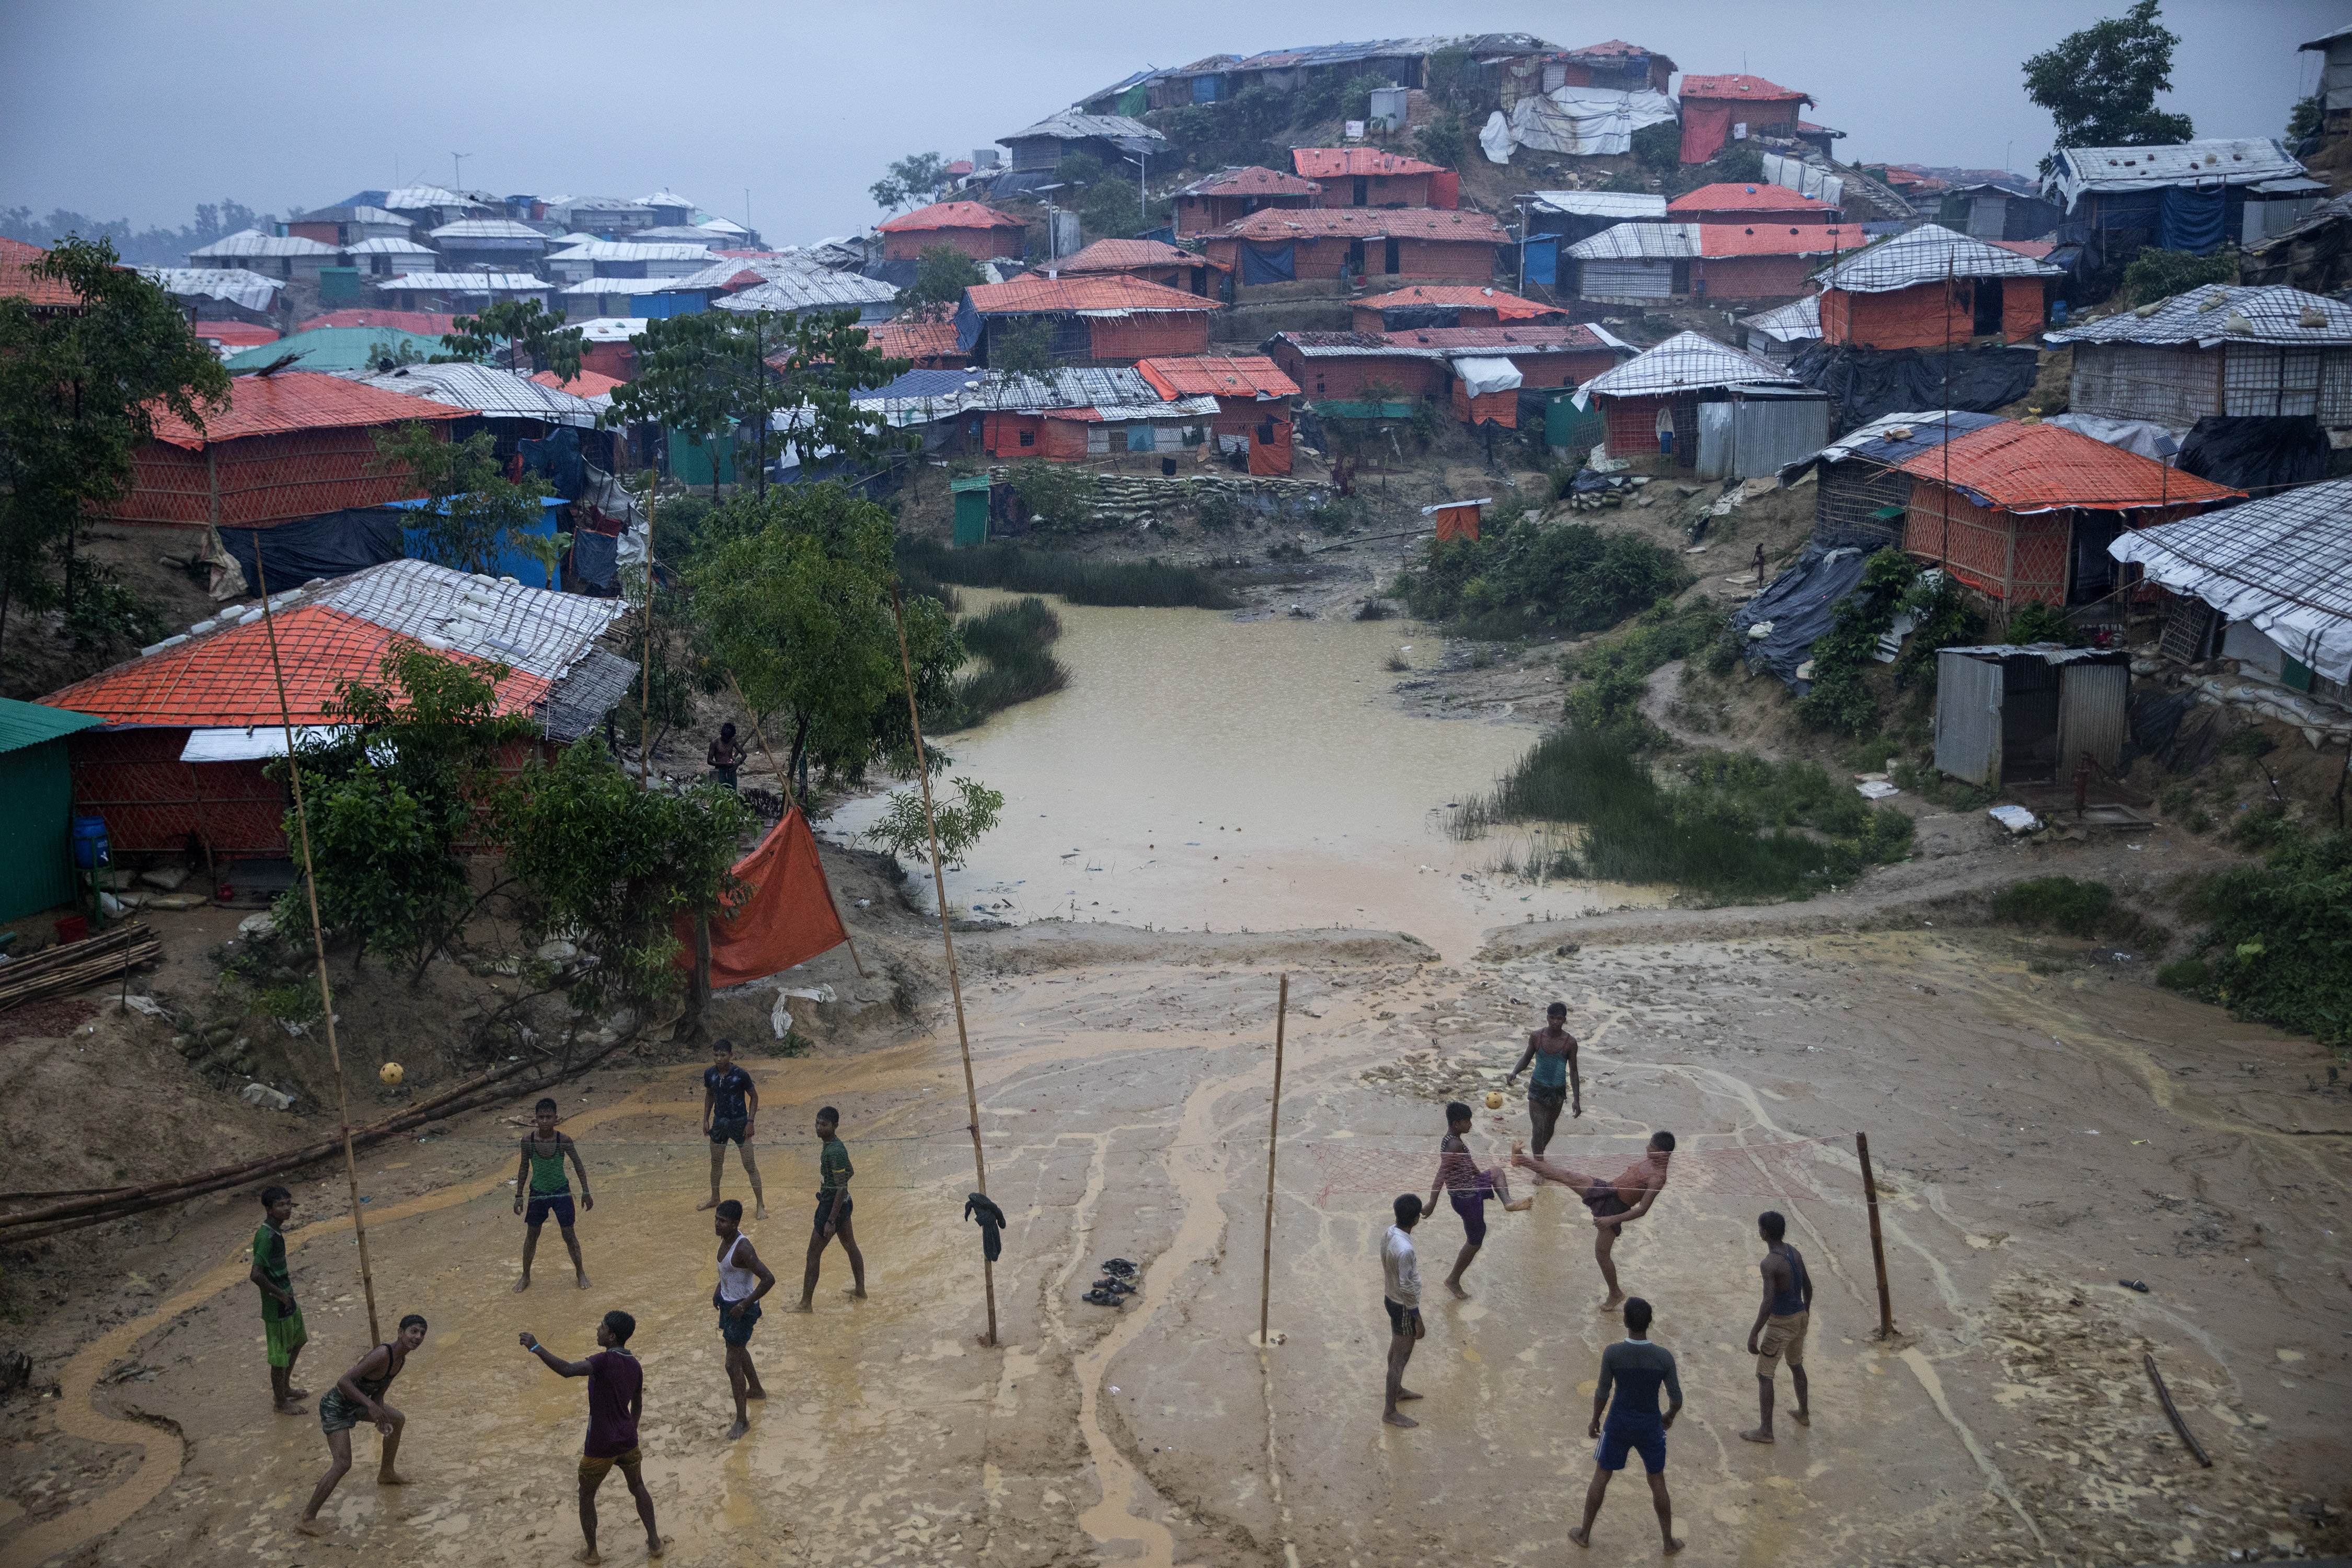 Flooding in a refugee camp in Bangladesh during monsoon season in August 2018.